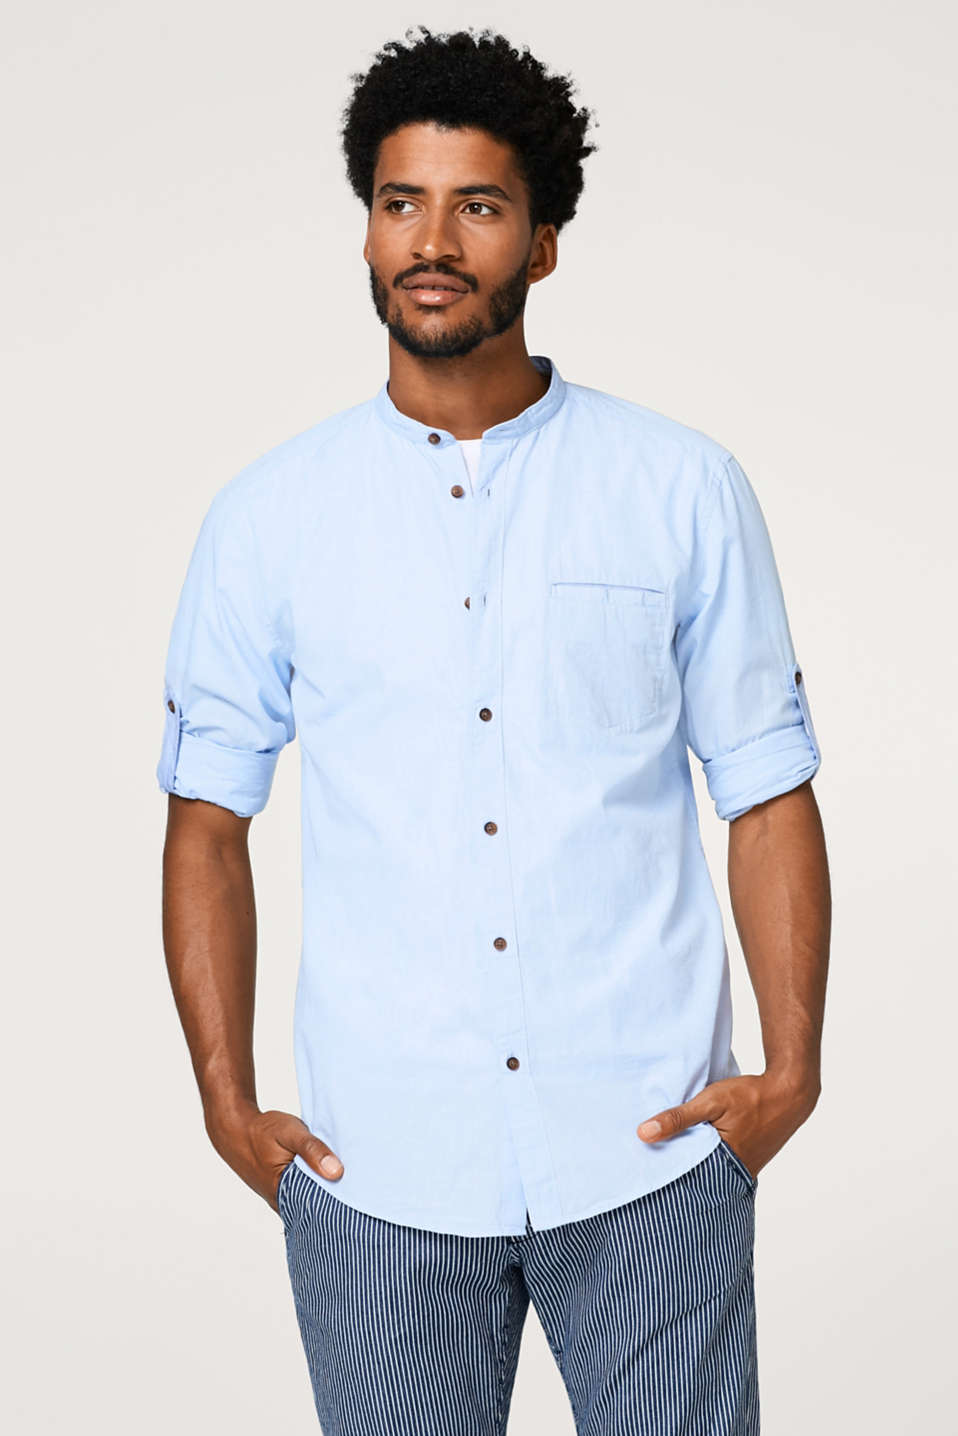 Esprit - Finely textured, two-tone shirt in 100% cotton